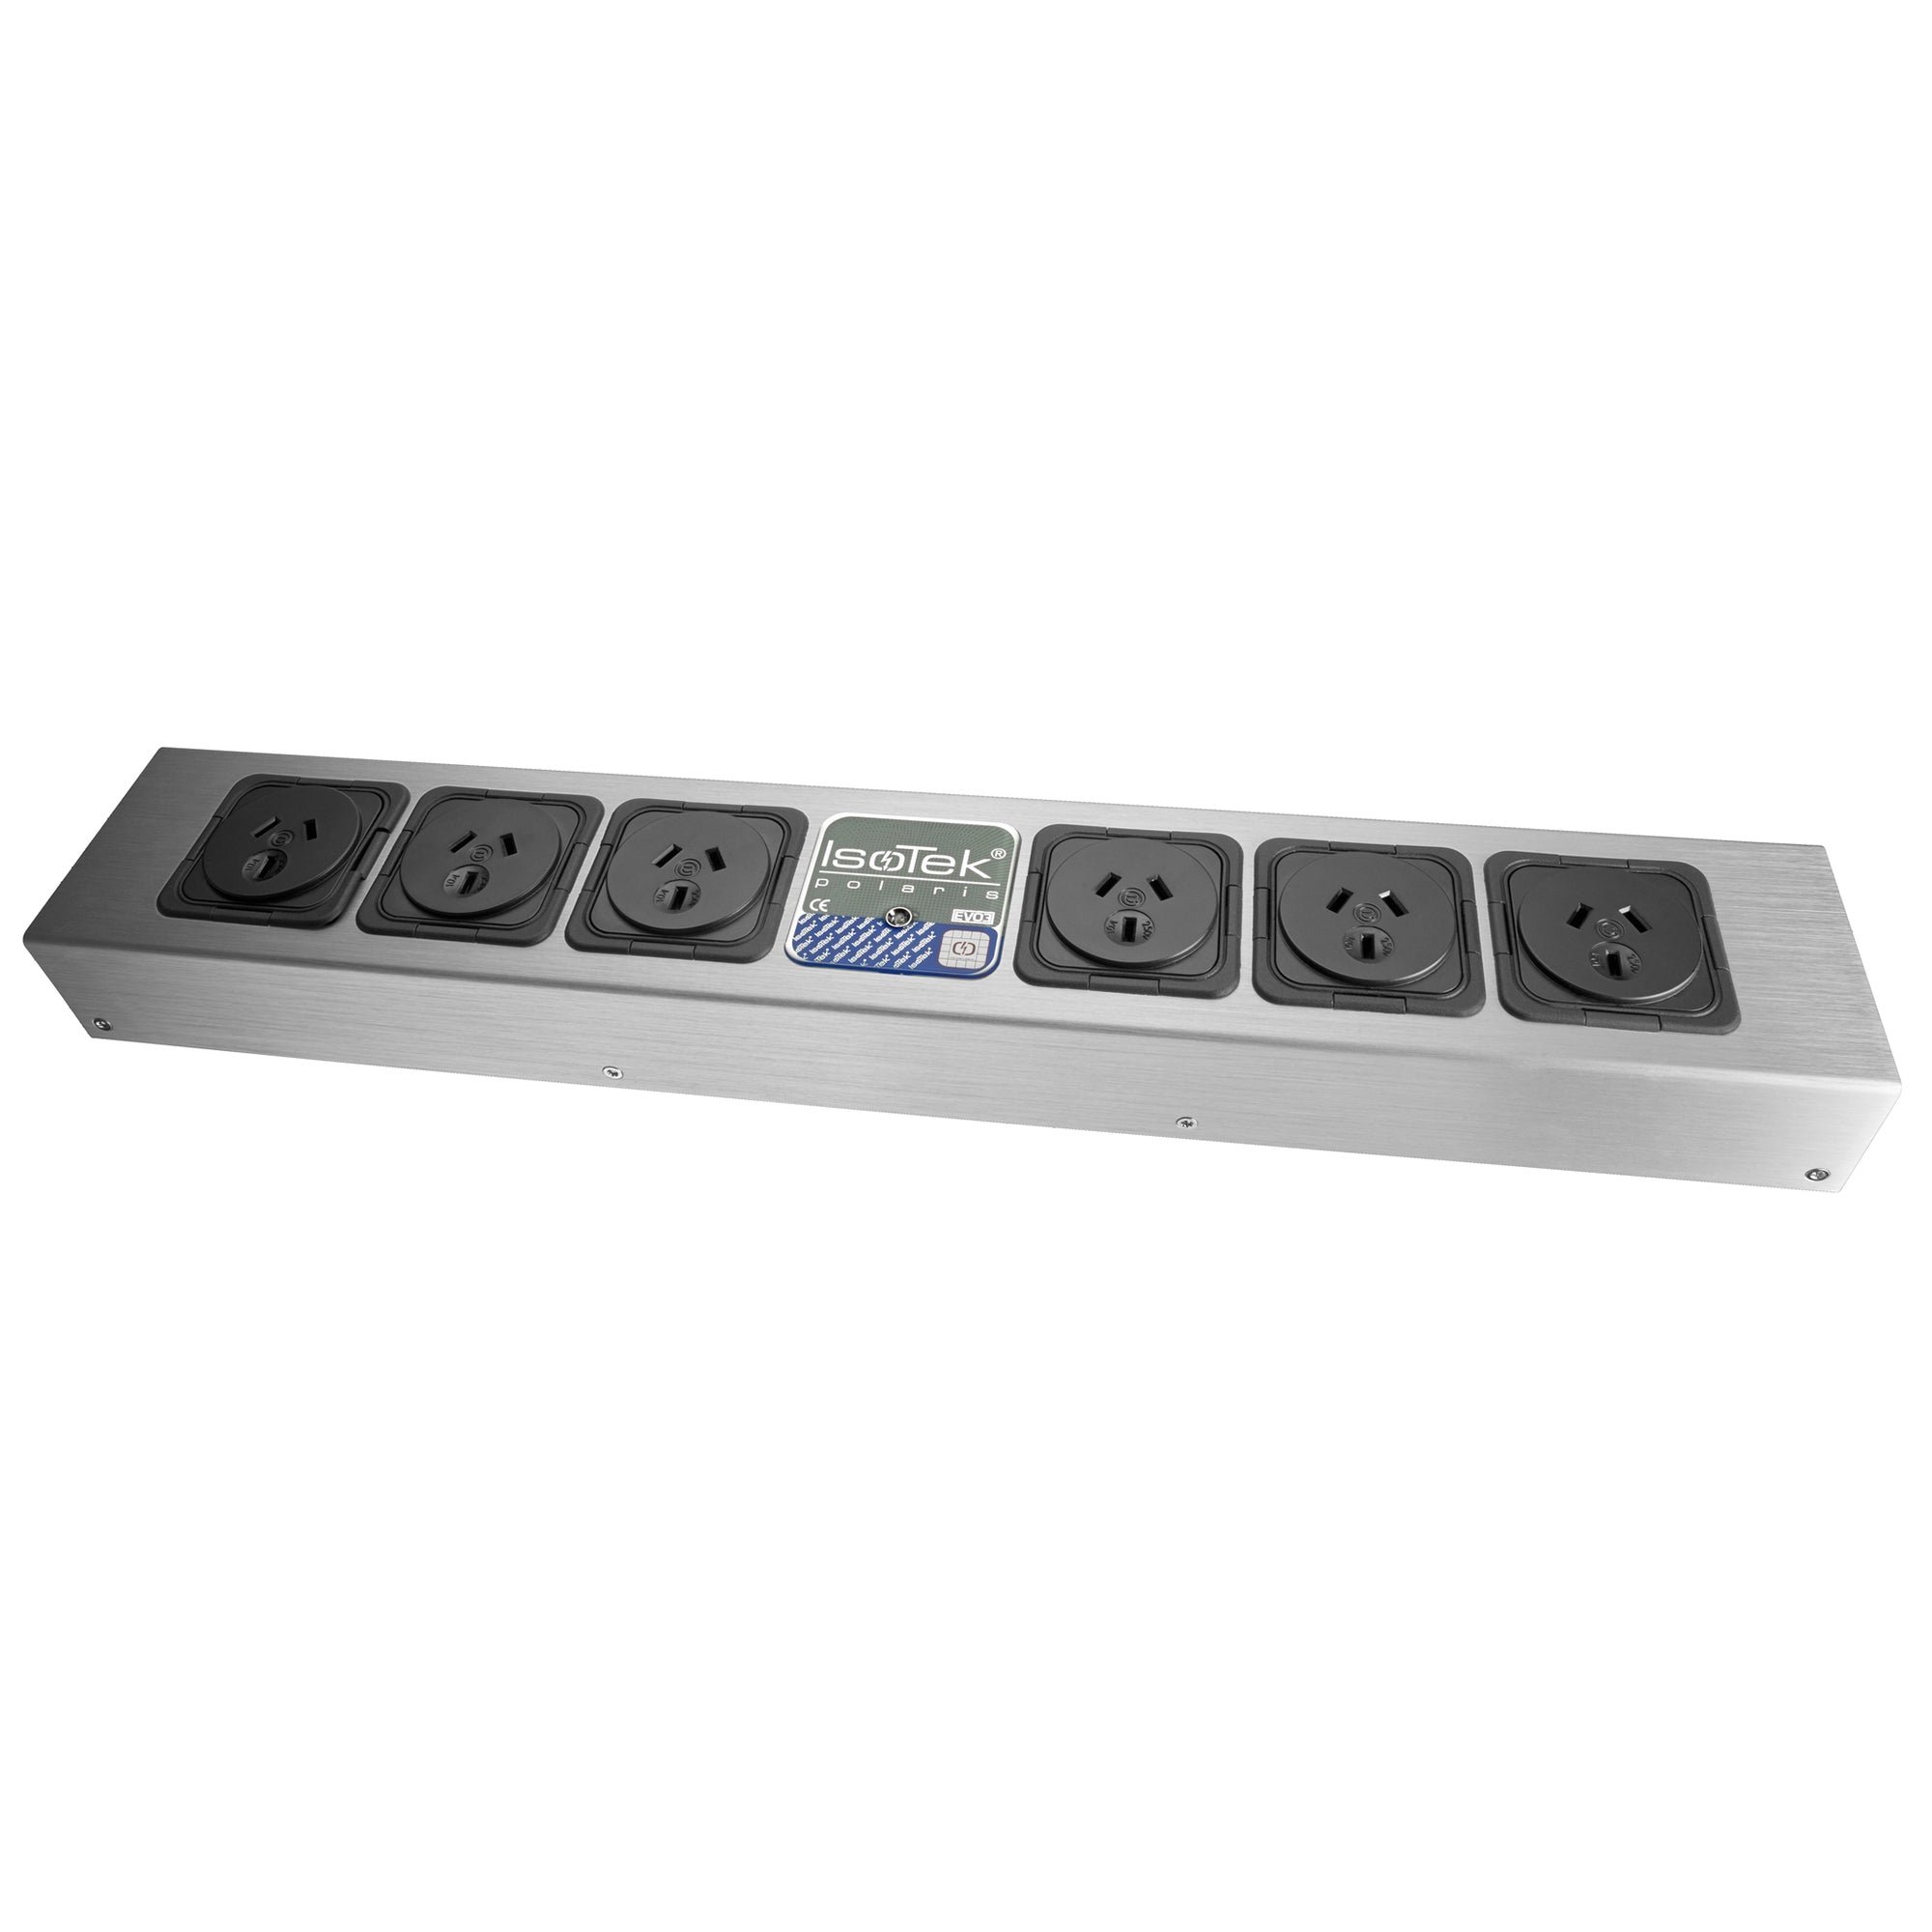 IsoTek EVO3 Power Conditioner Polaris 6-way Powerboard